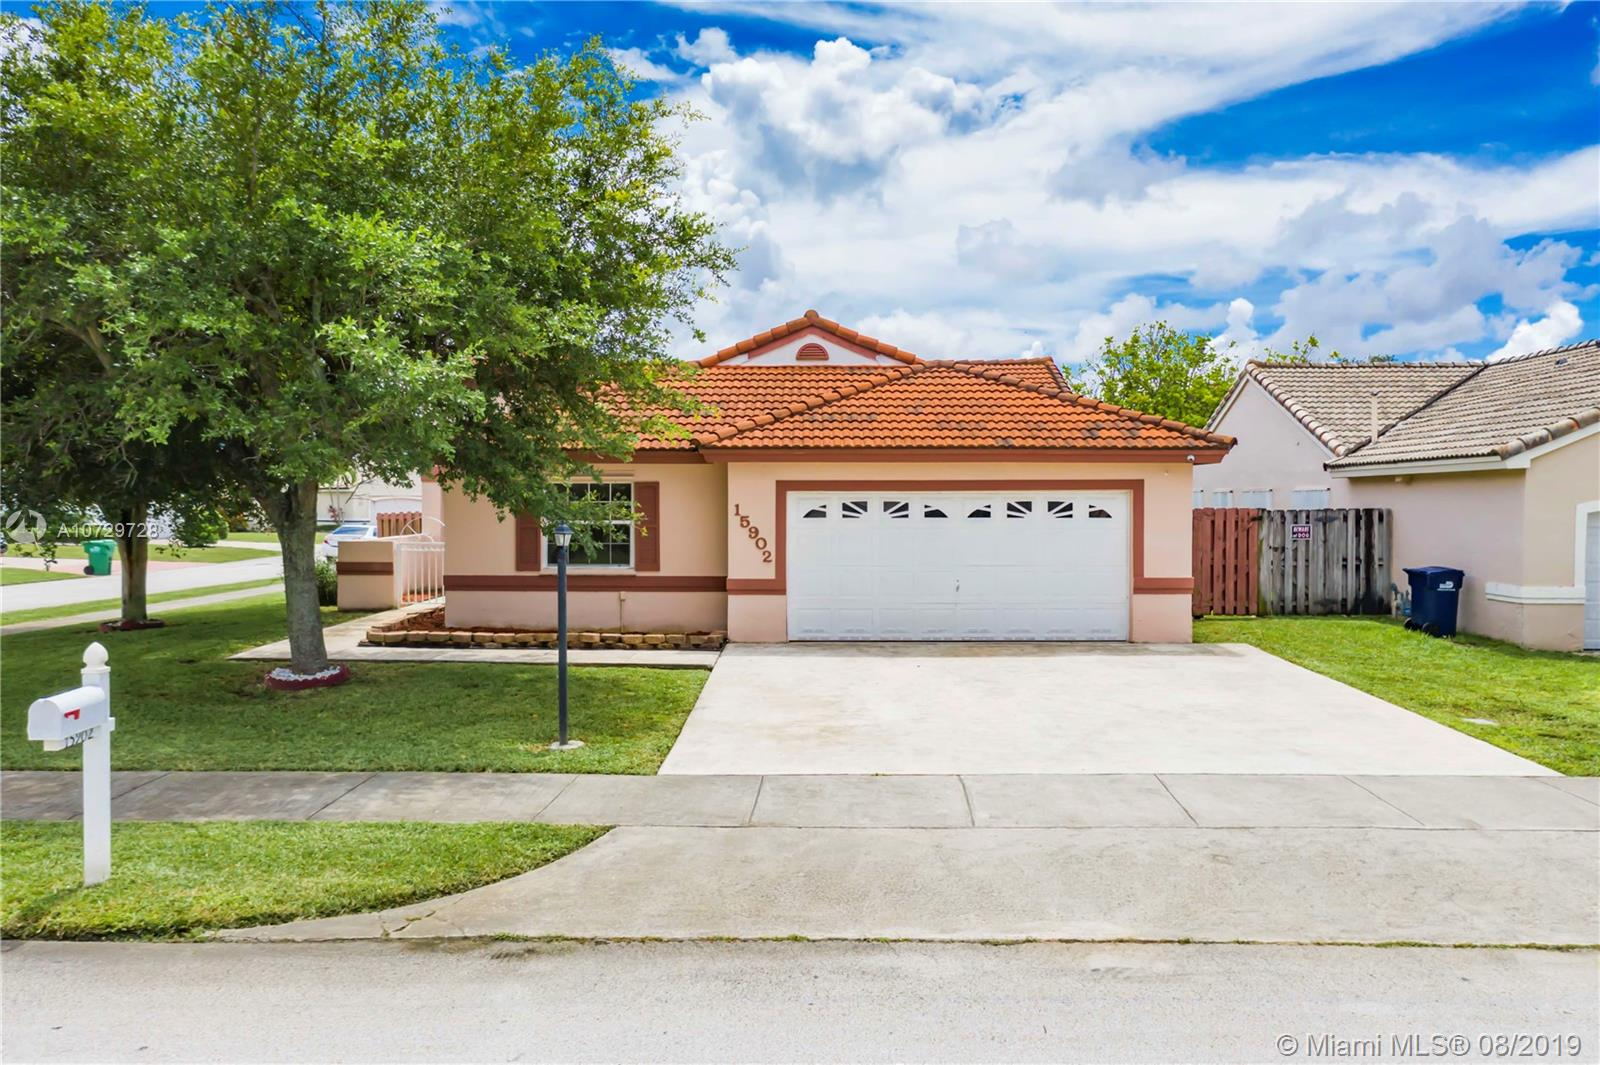 15902 SW 73rd St, Kendall West, Florida